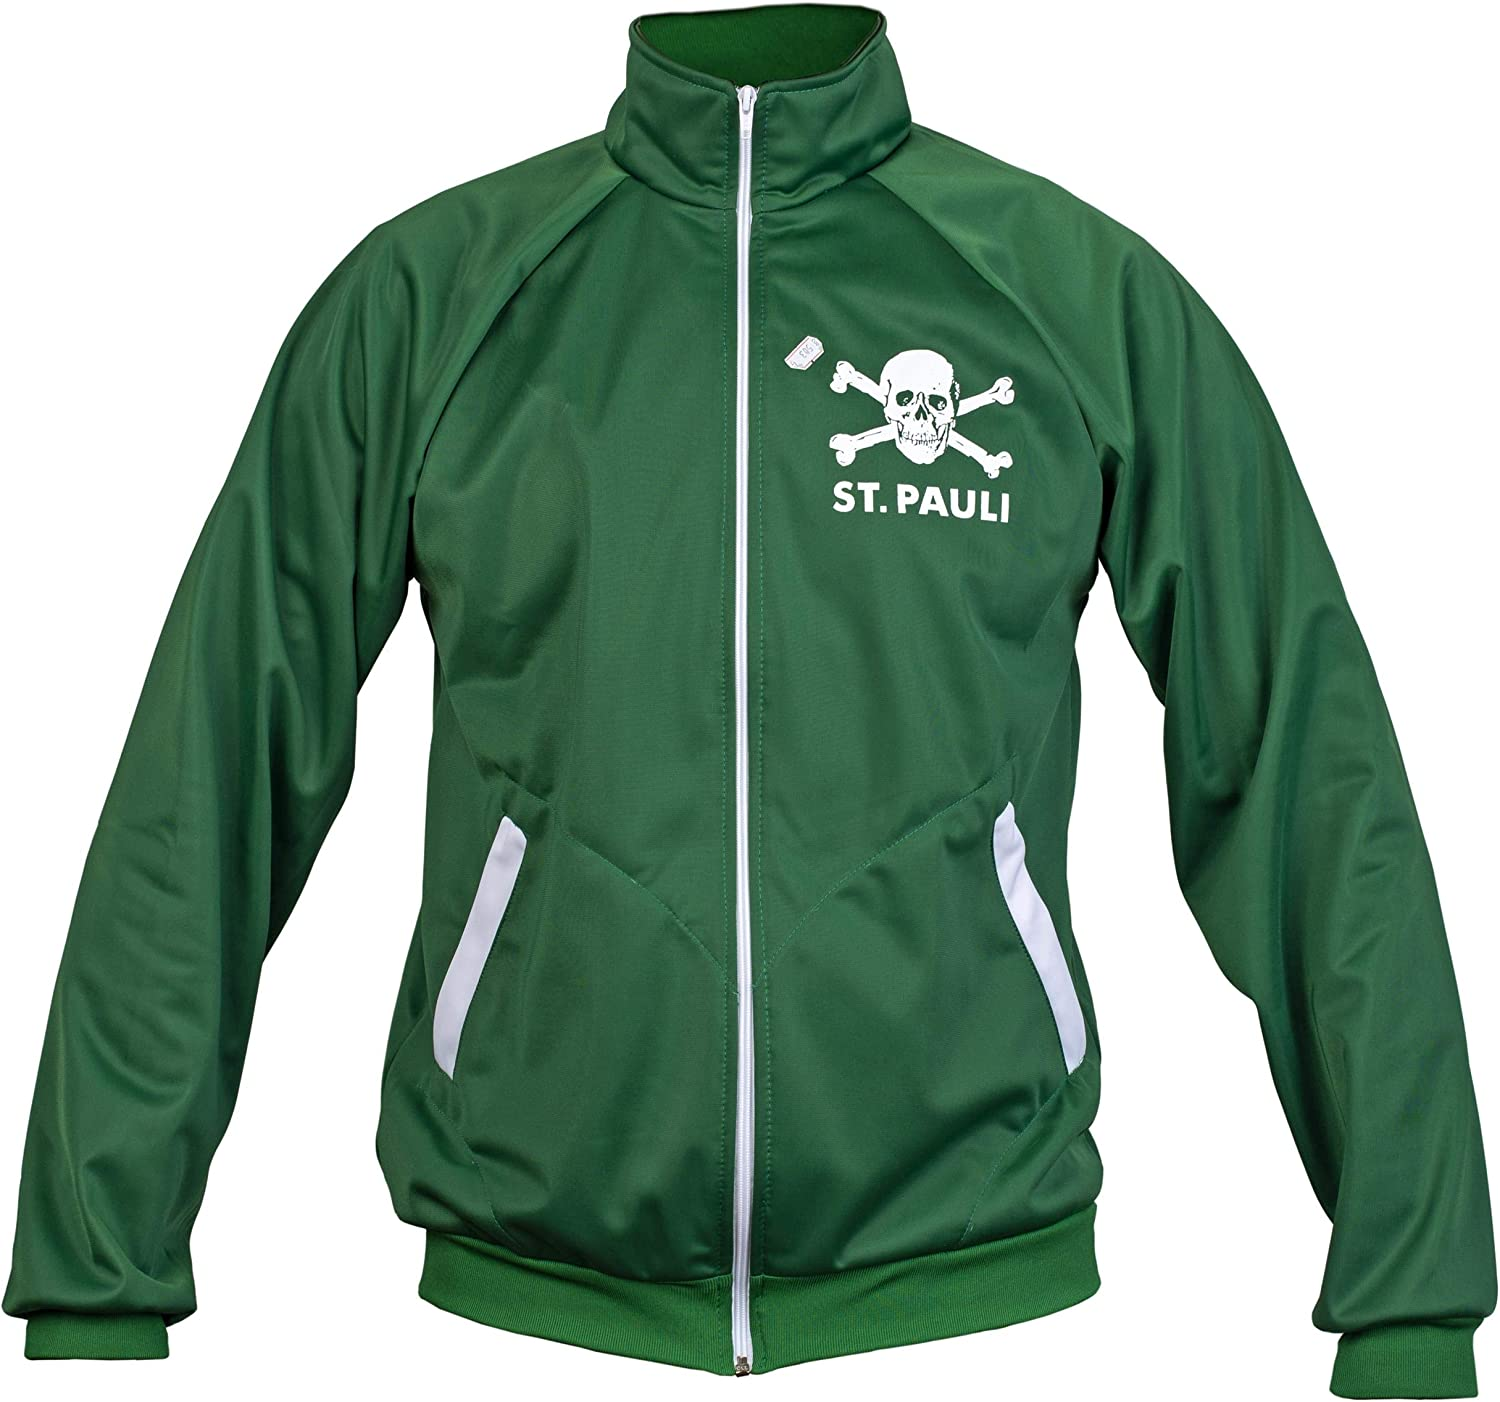 St. Pauli Green Ultras Skull Kult Crossbones Punk Activist Jacket Football Tracksuit Top